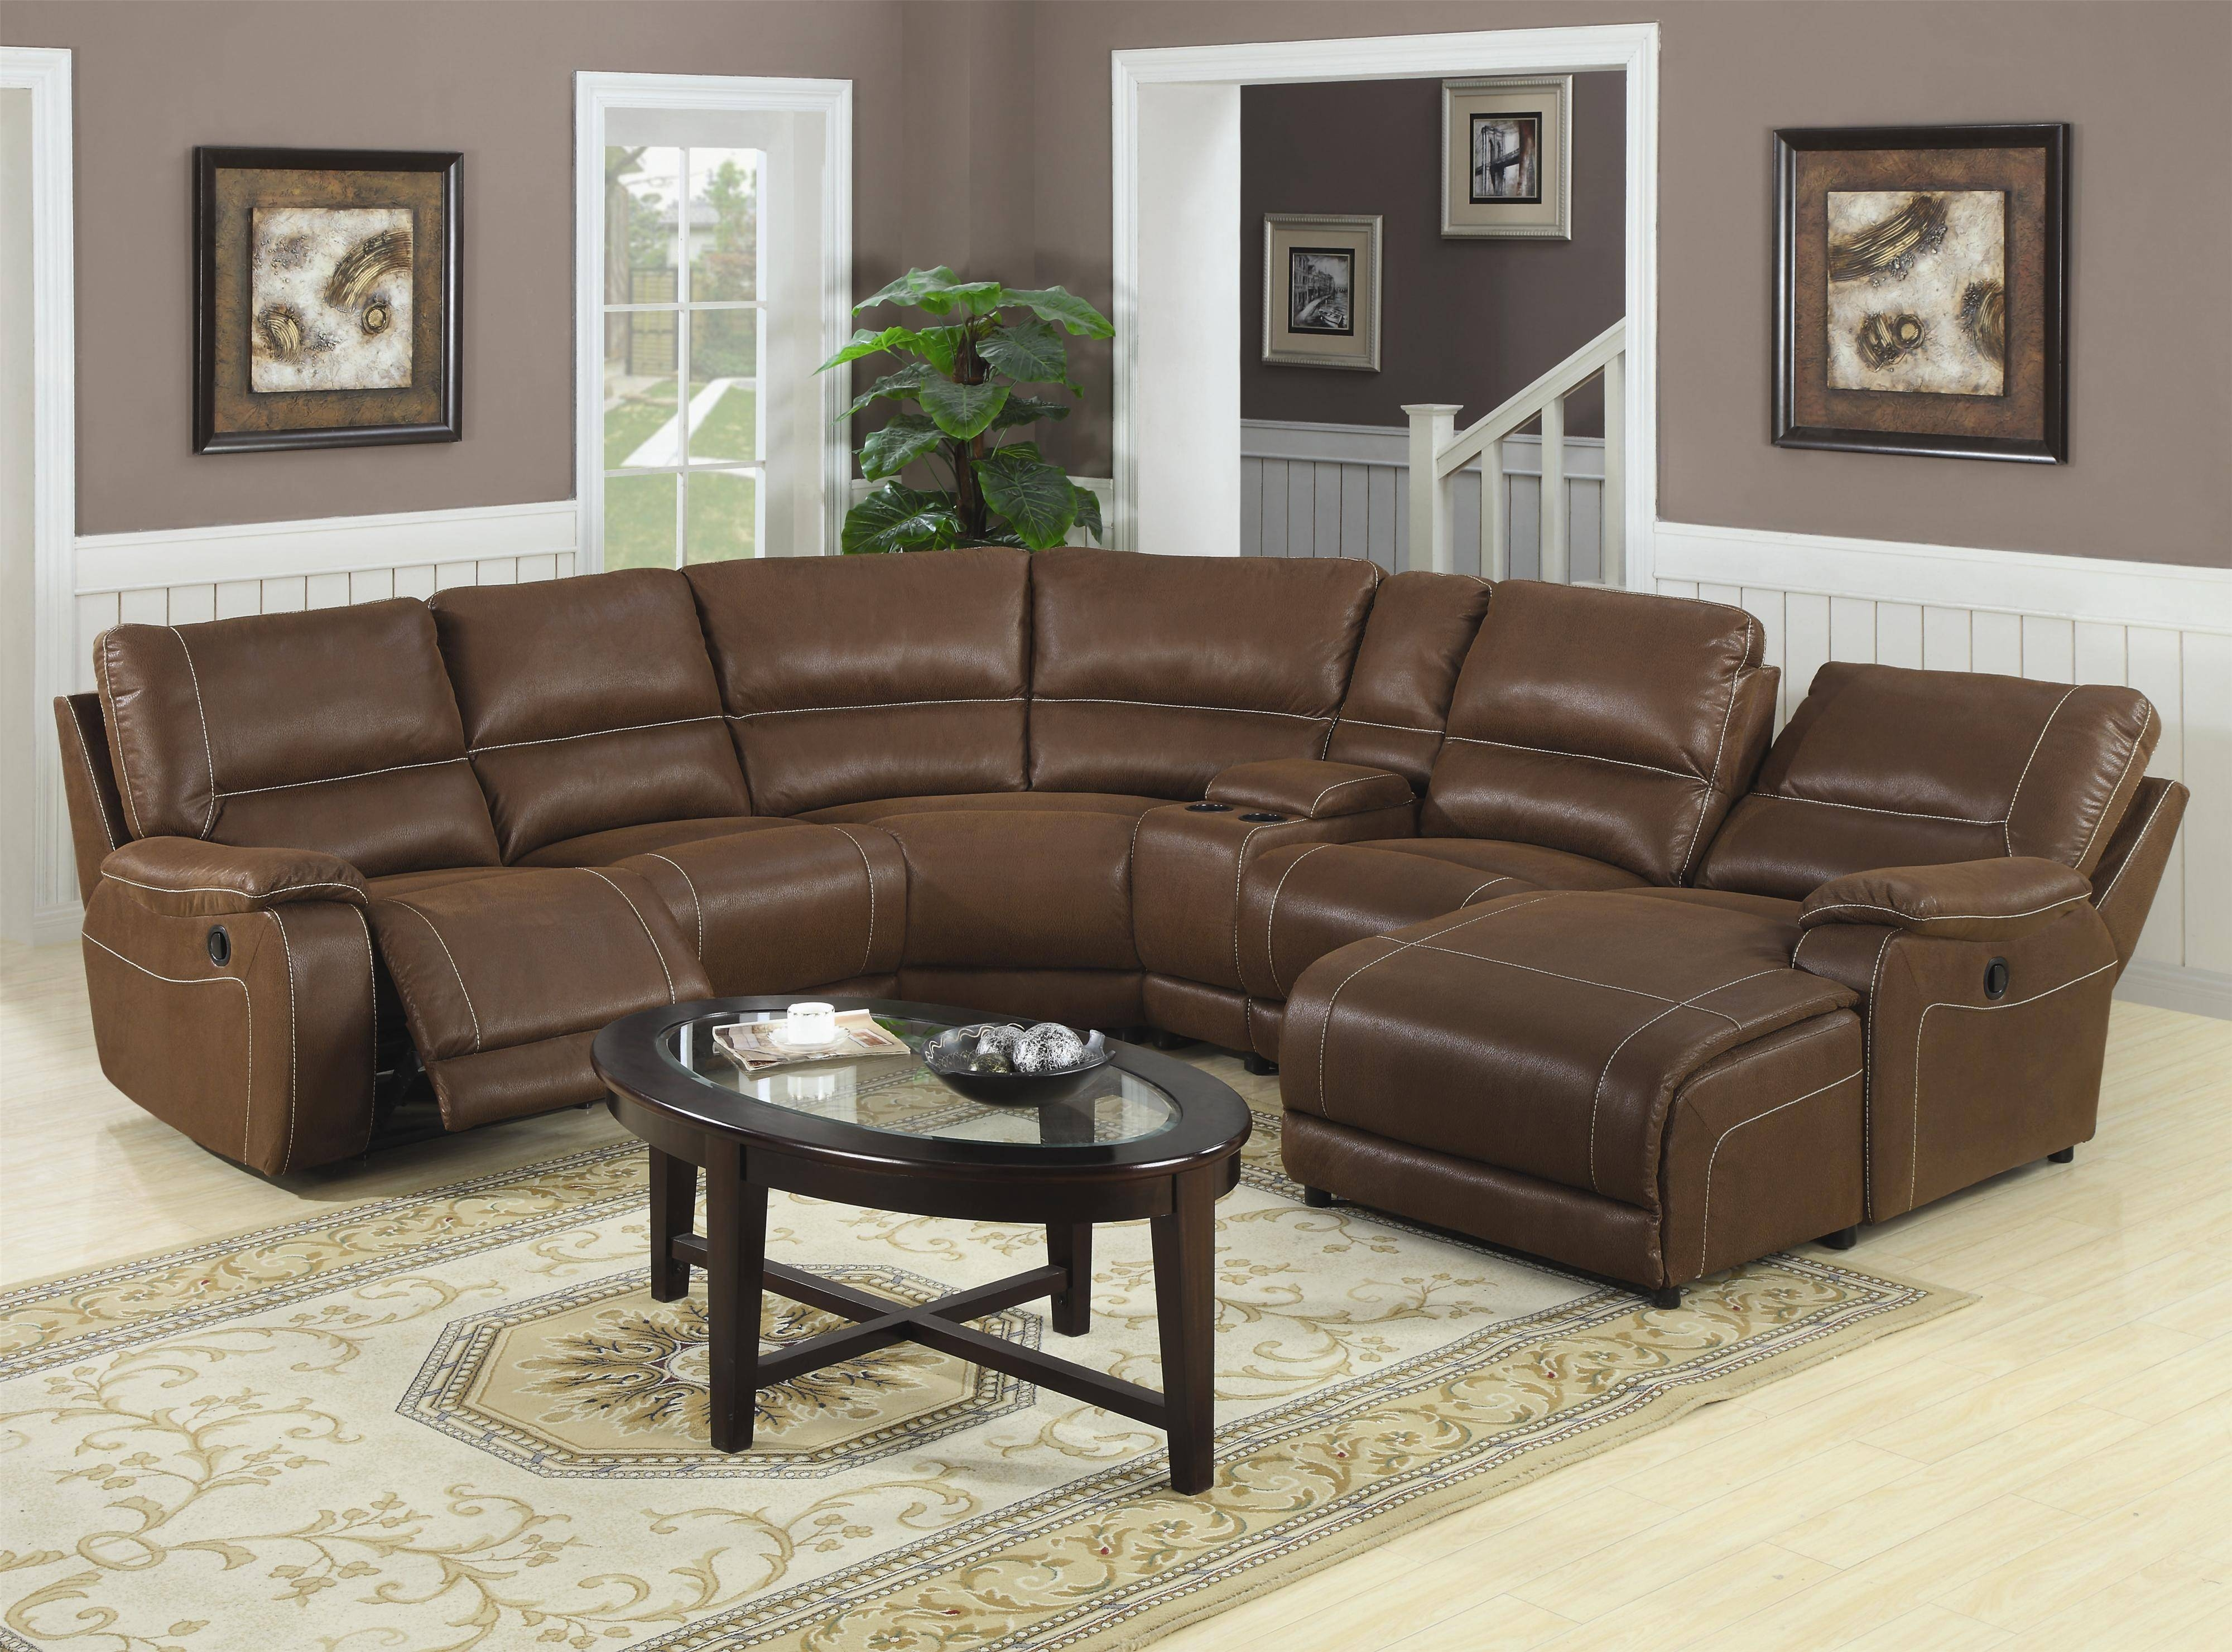 Attractive Sectional Recliner Sofas Microfiber 55 With Additional with Vintage Leather Sectional Sofas (Image 5 of 30)